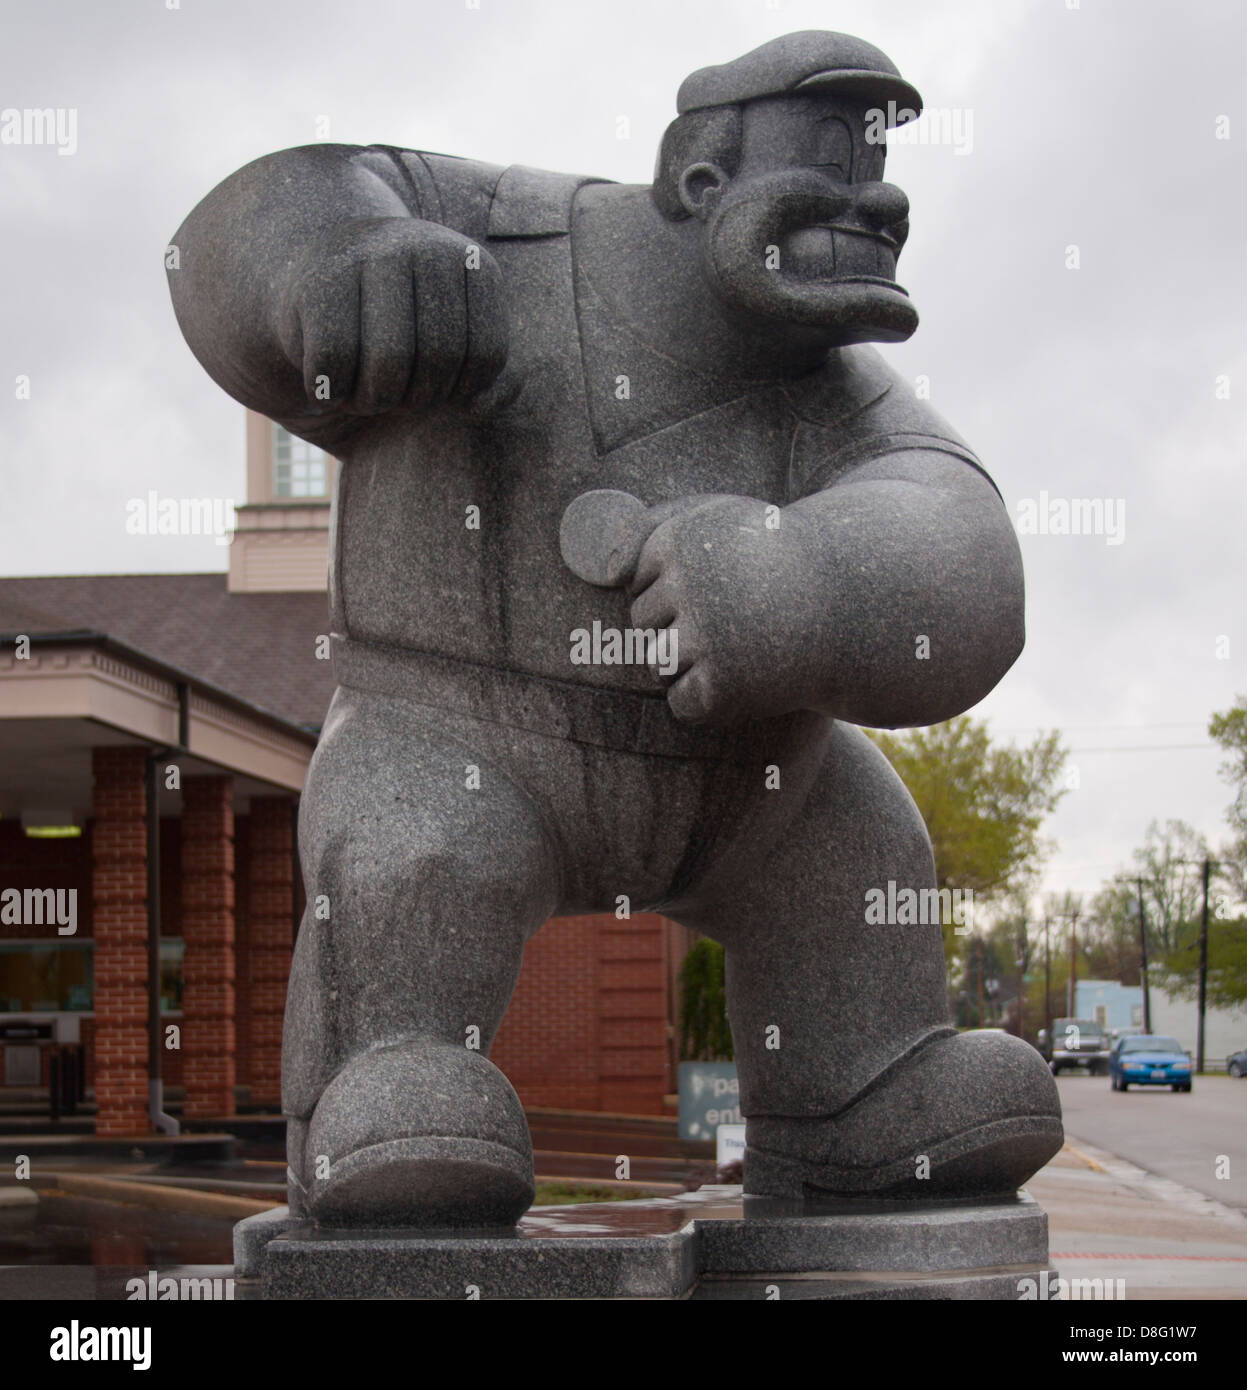 Pluto Statue in Chester Illinois Home of Popeye - Stock Image